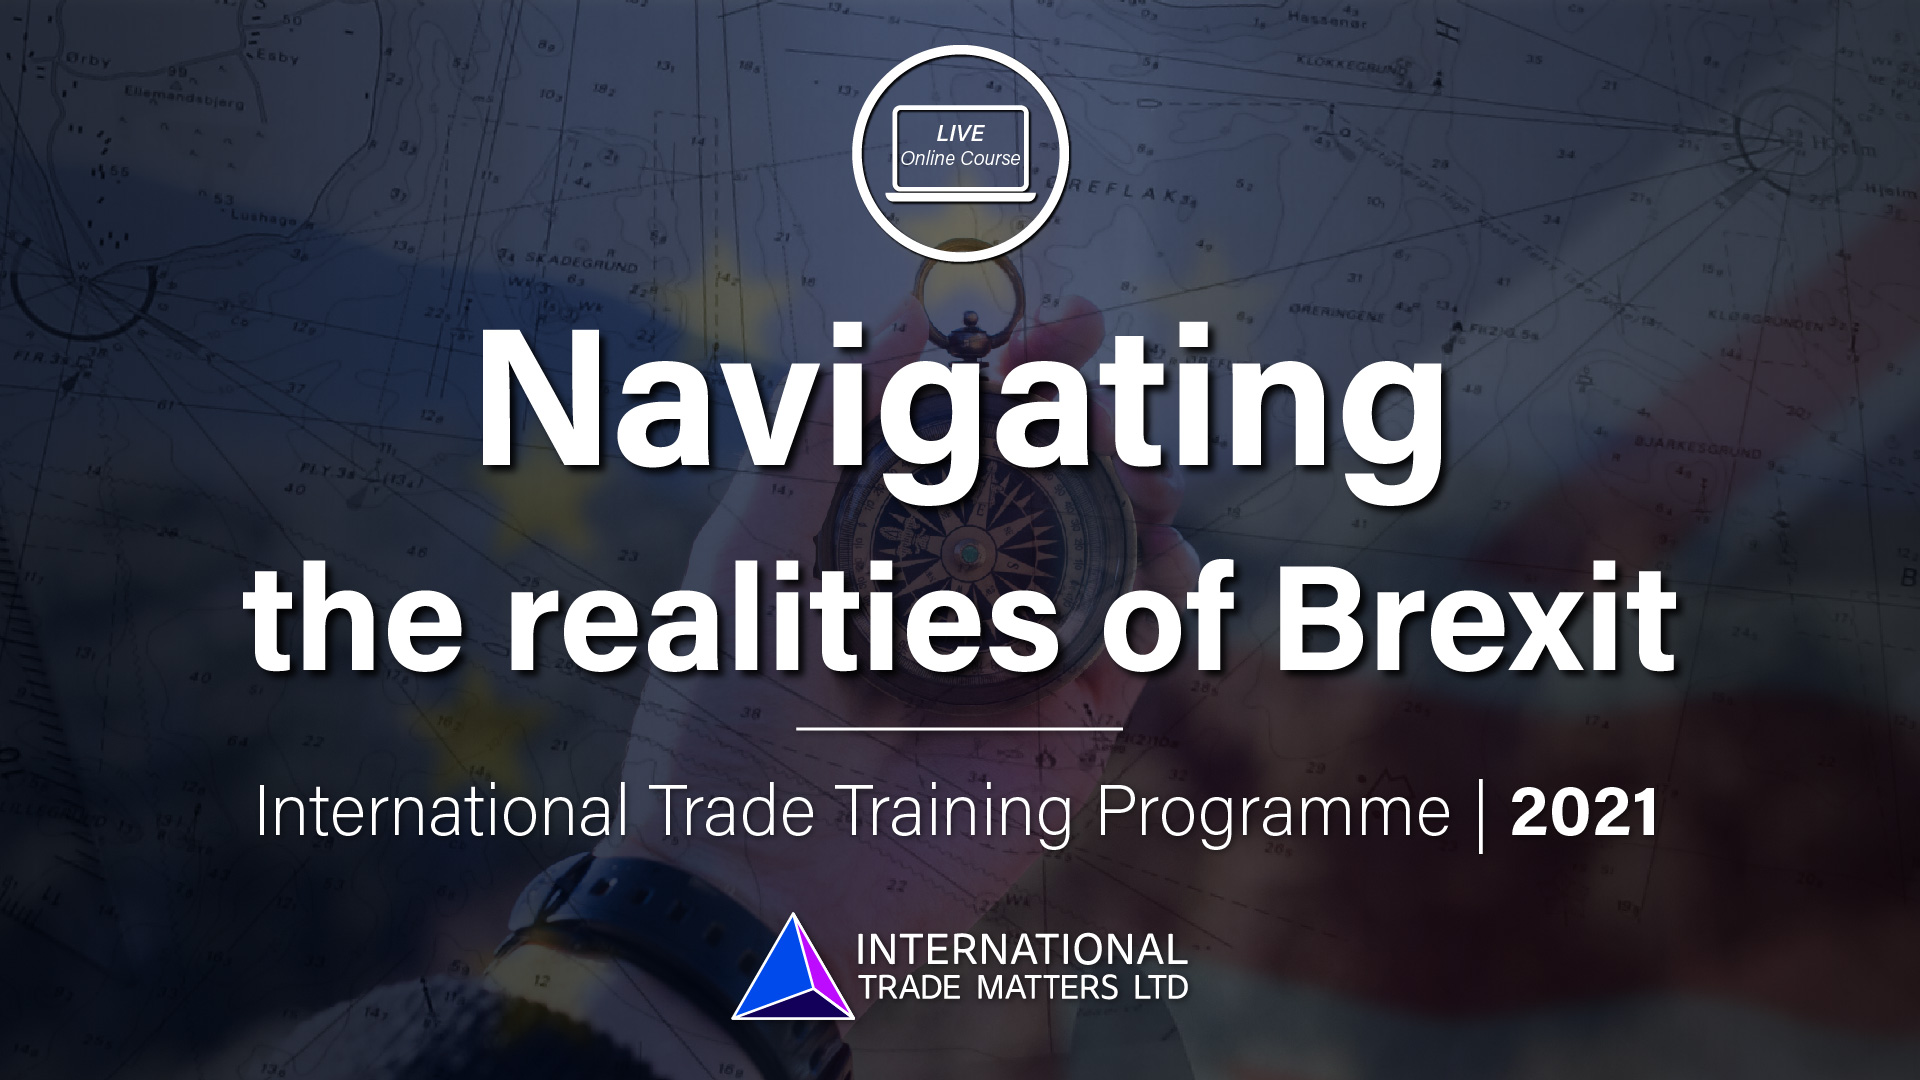 Navigating The Realities of Brexit - An Online Course.